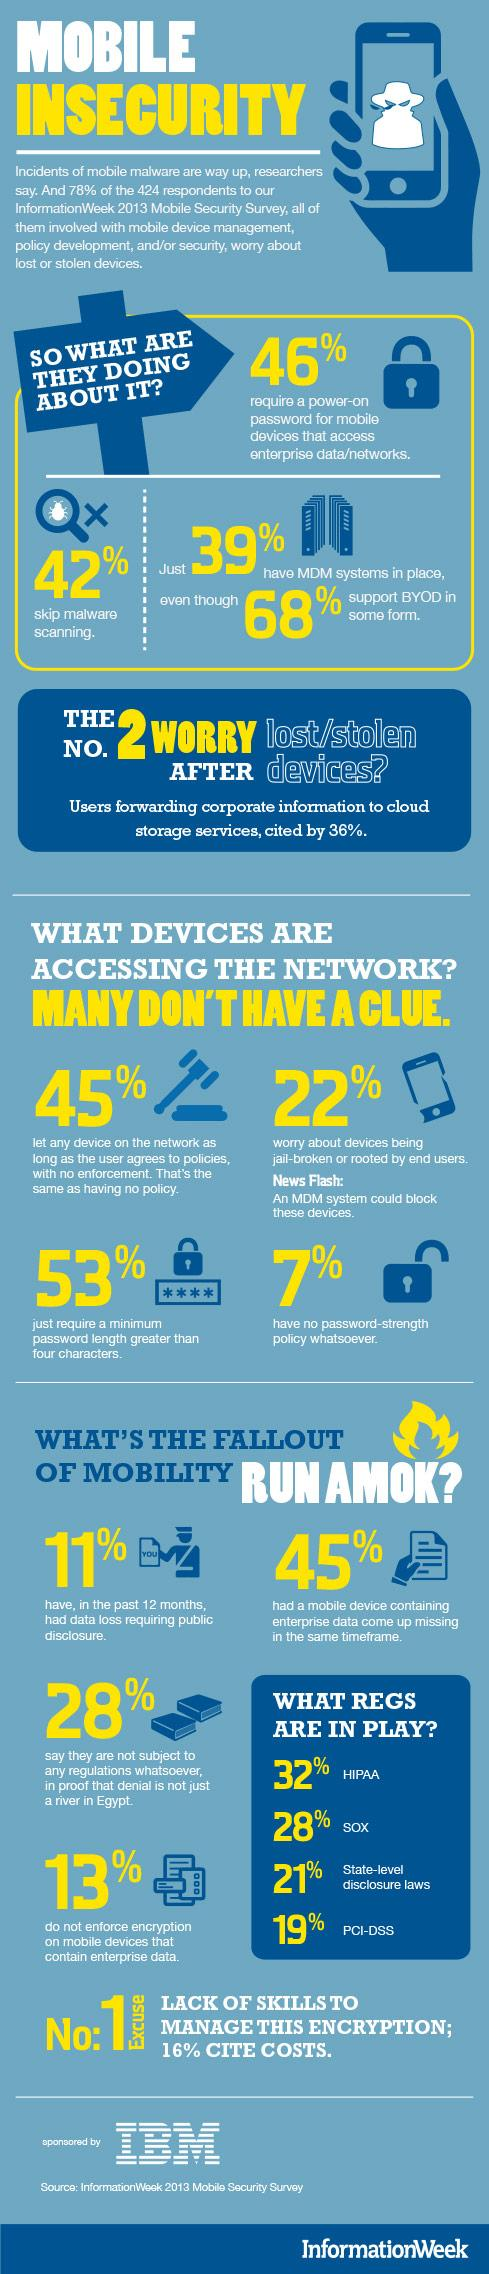 Mobile-Insecurity-IBM